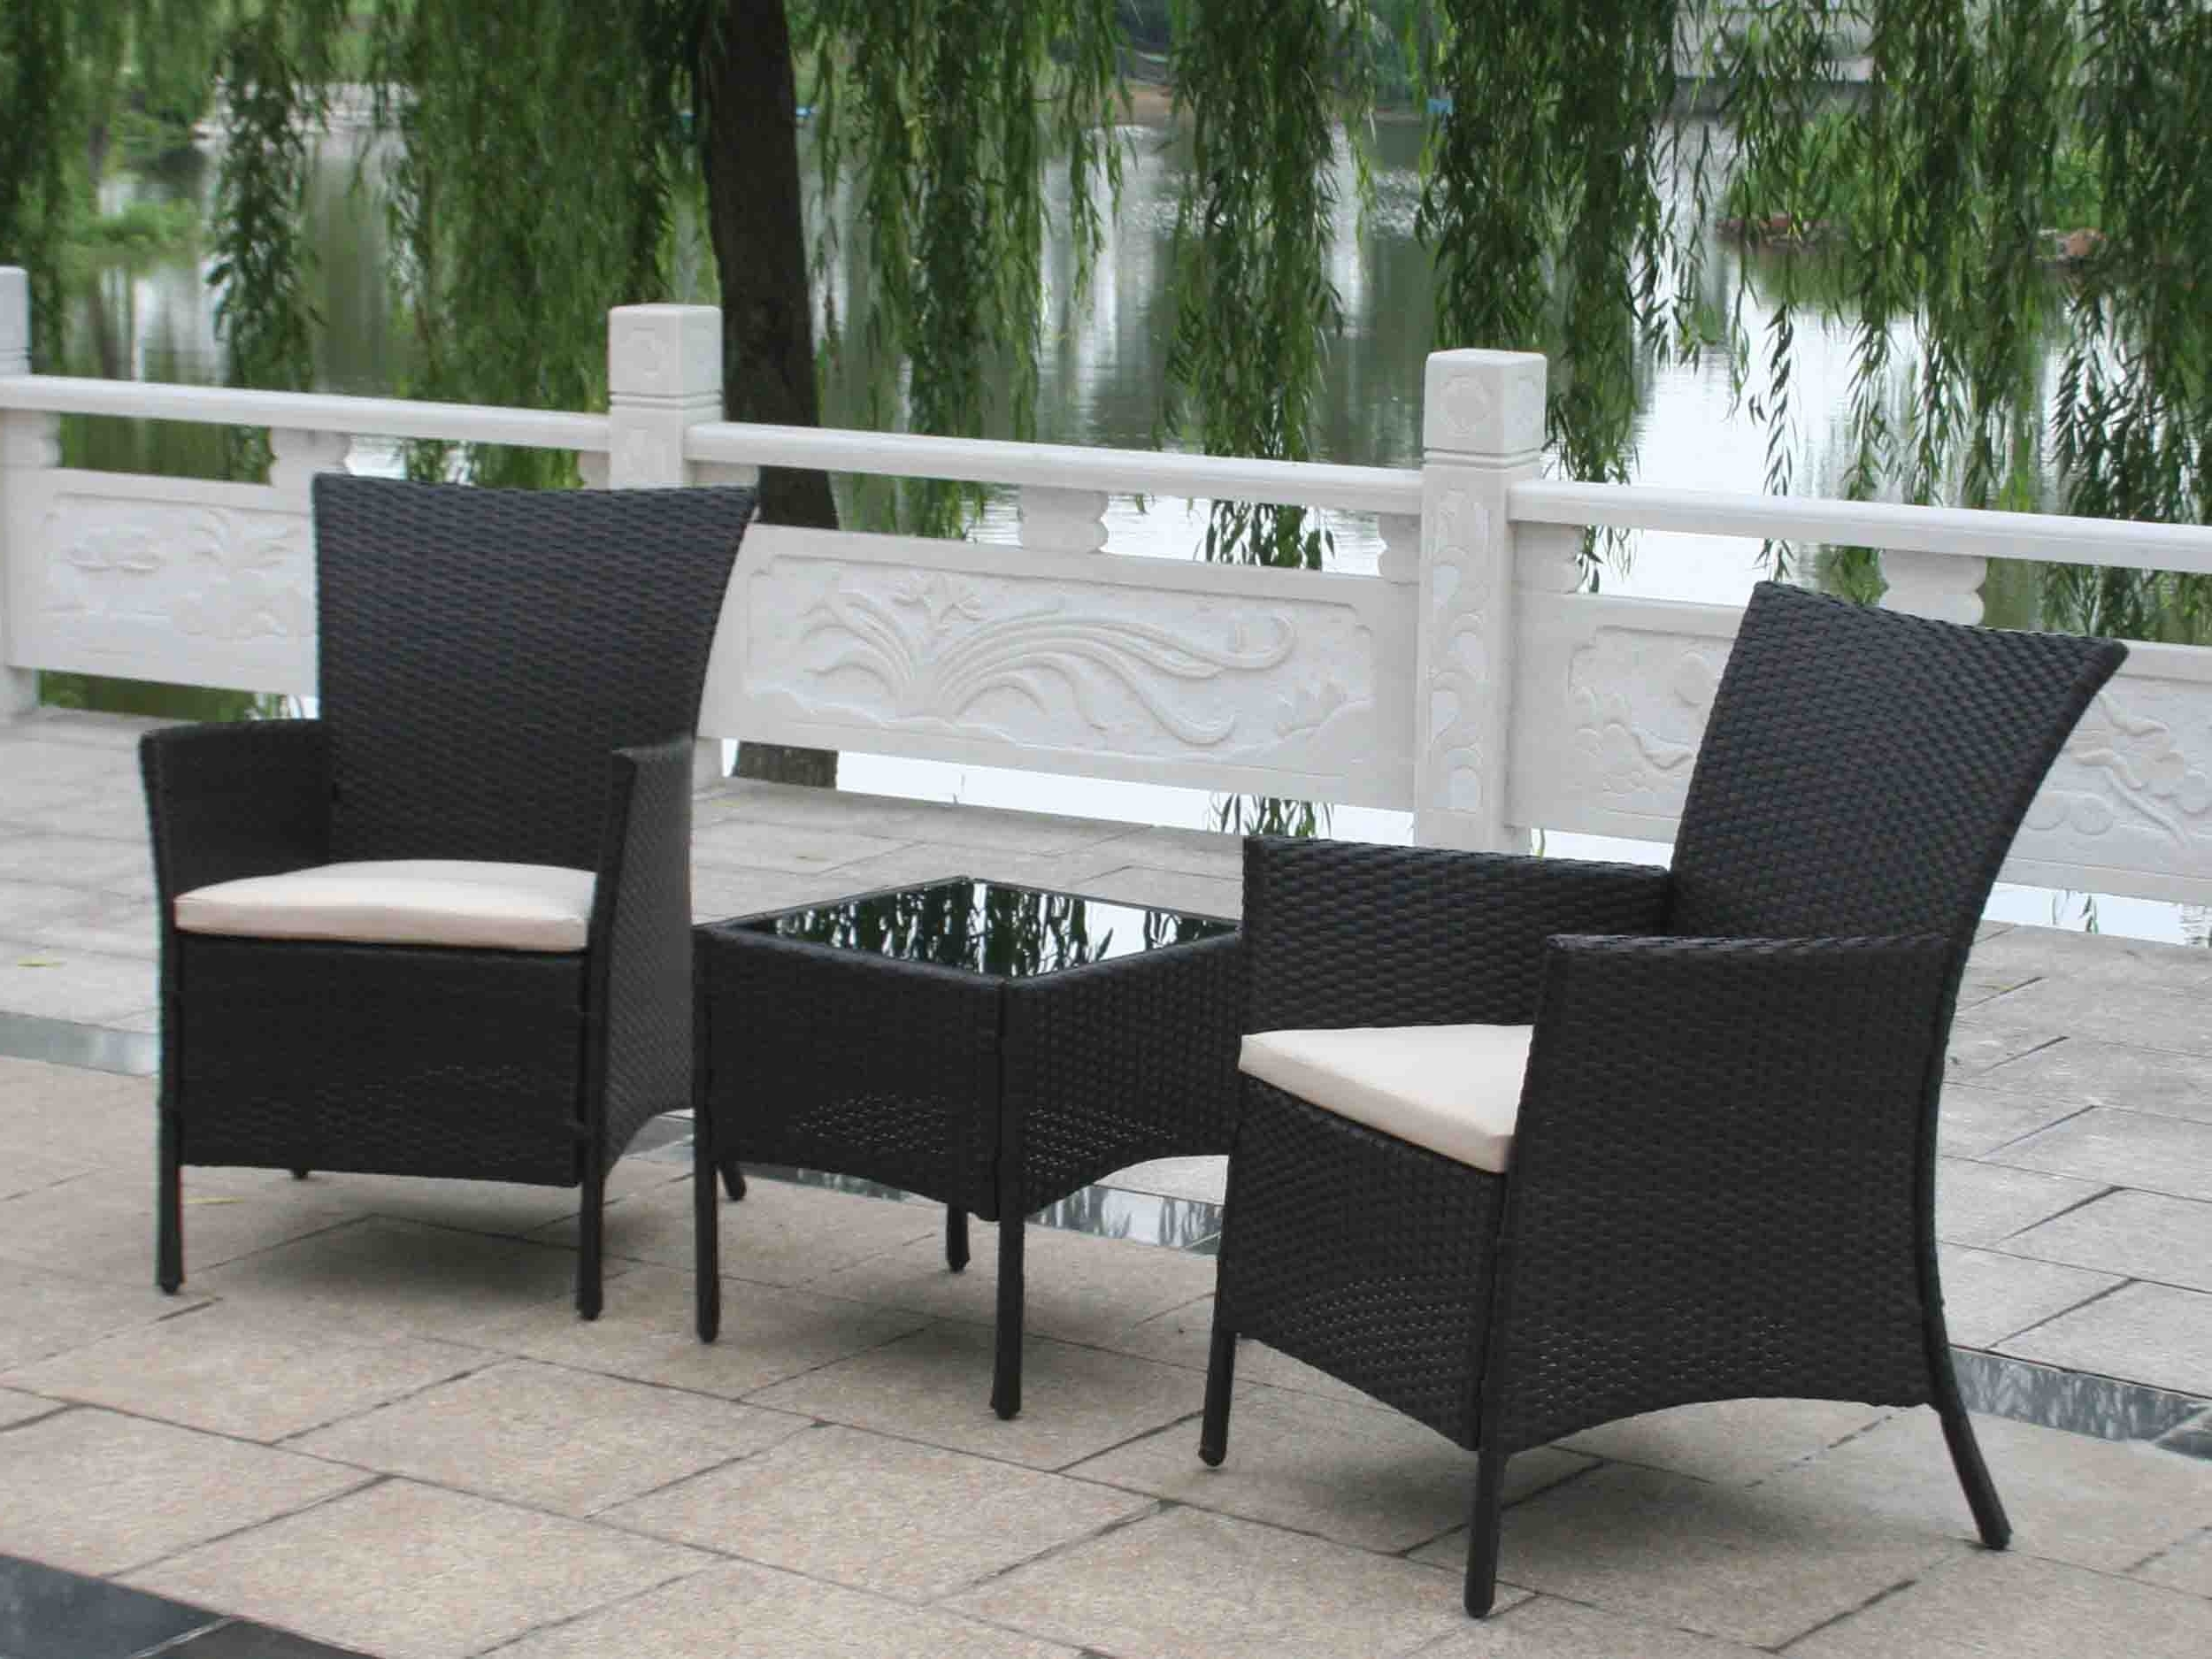 Black Patio Conversation Sets Within Newest Patio : Black Wicker Patio Furniture Black Wicker Patio Furniture (View 7 of 20)